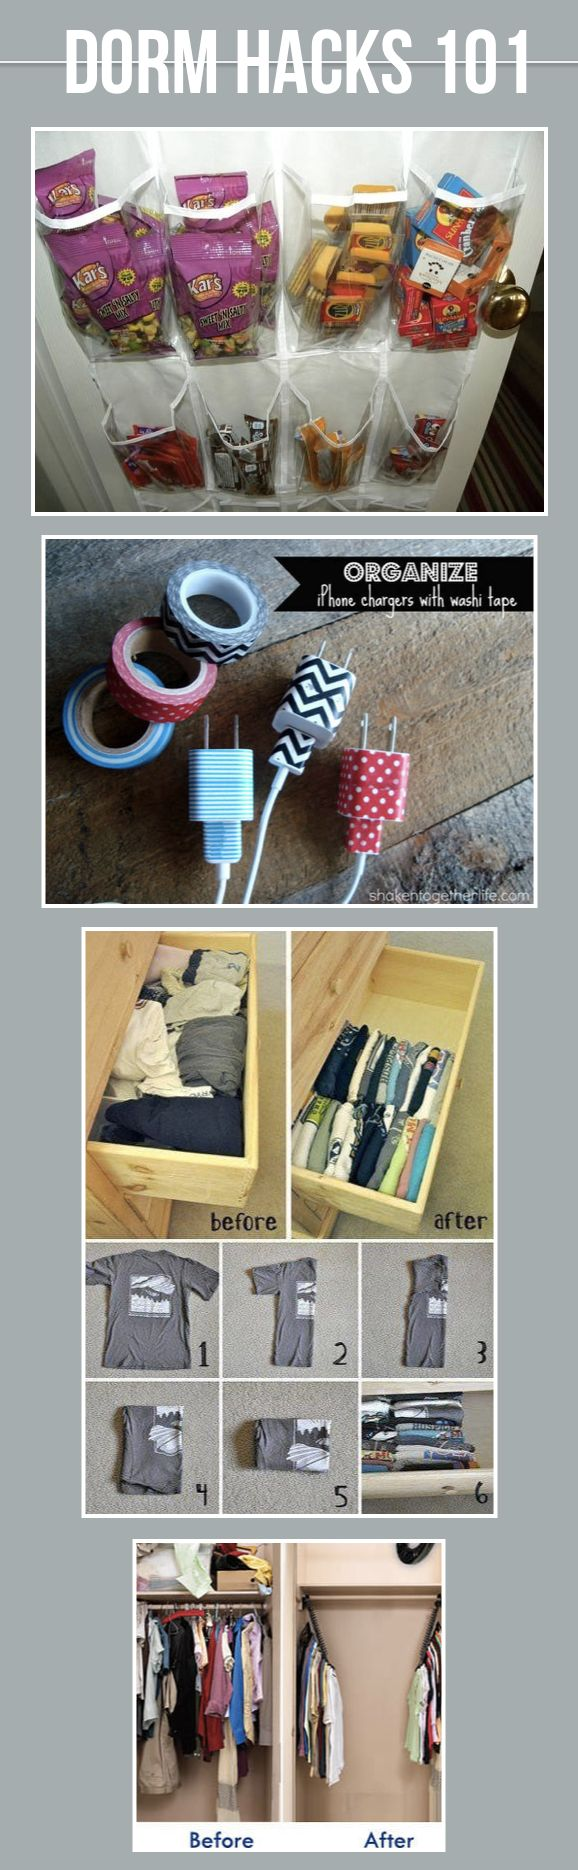 19 Must Know Dorm Hacks to Make Your College Life a Little Bit Easier!